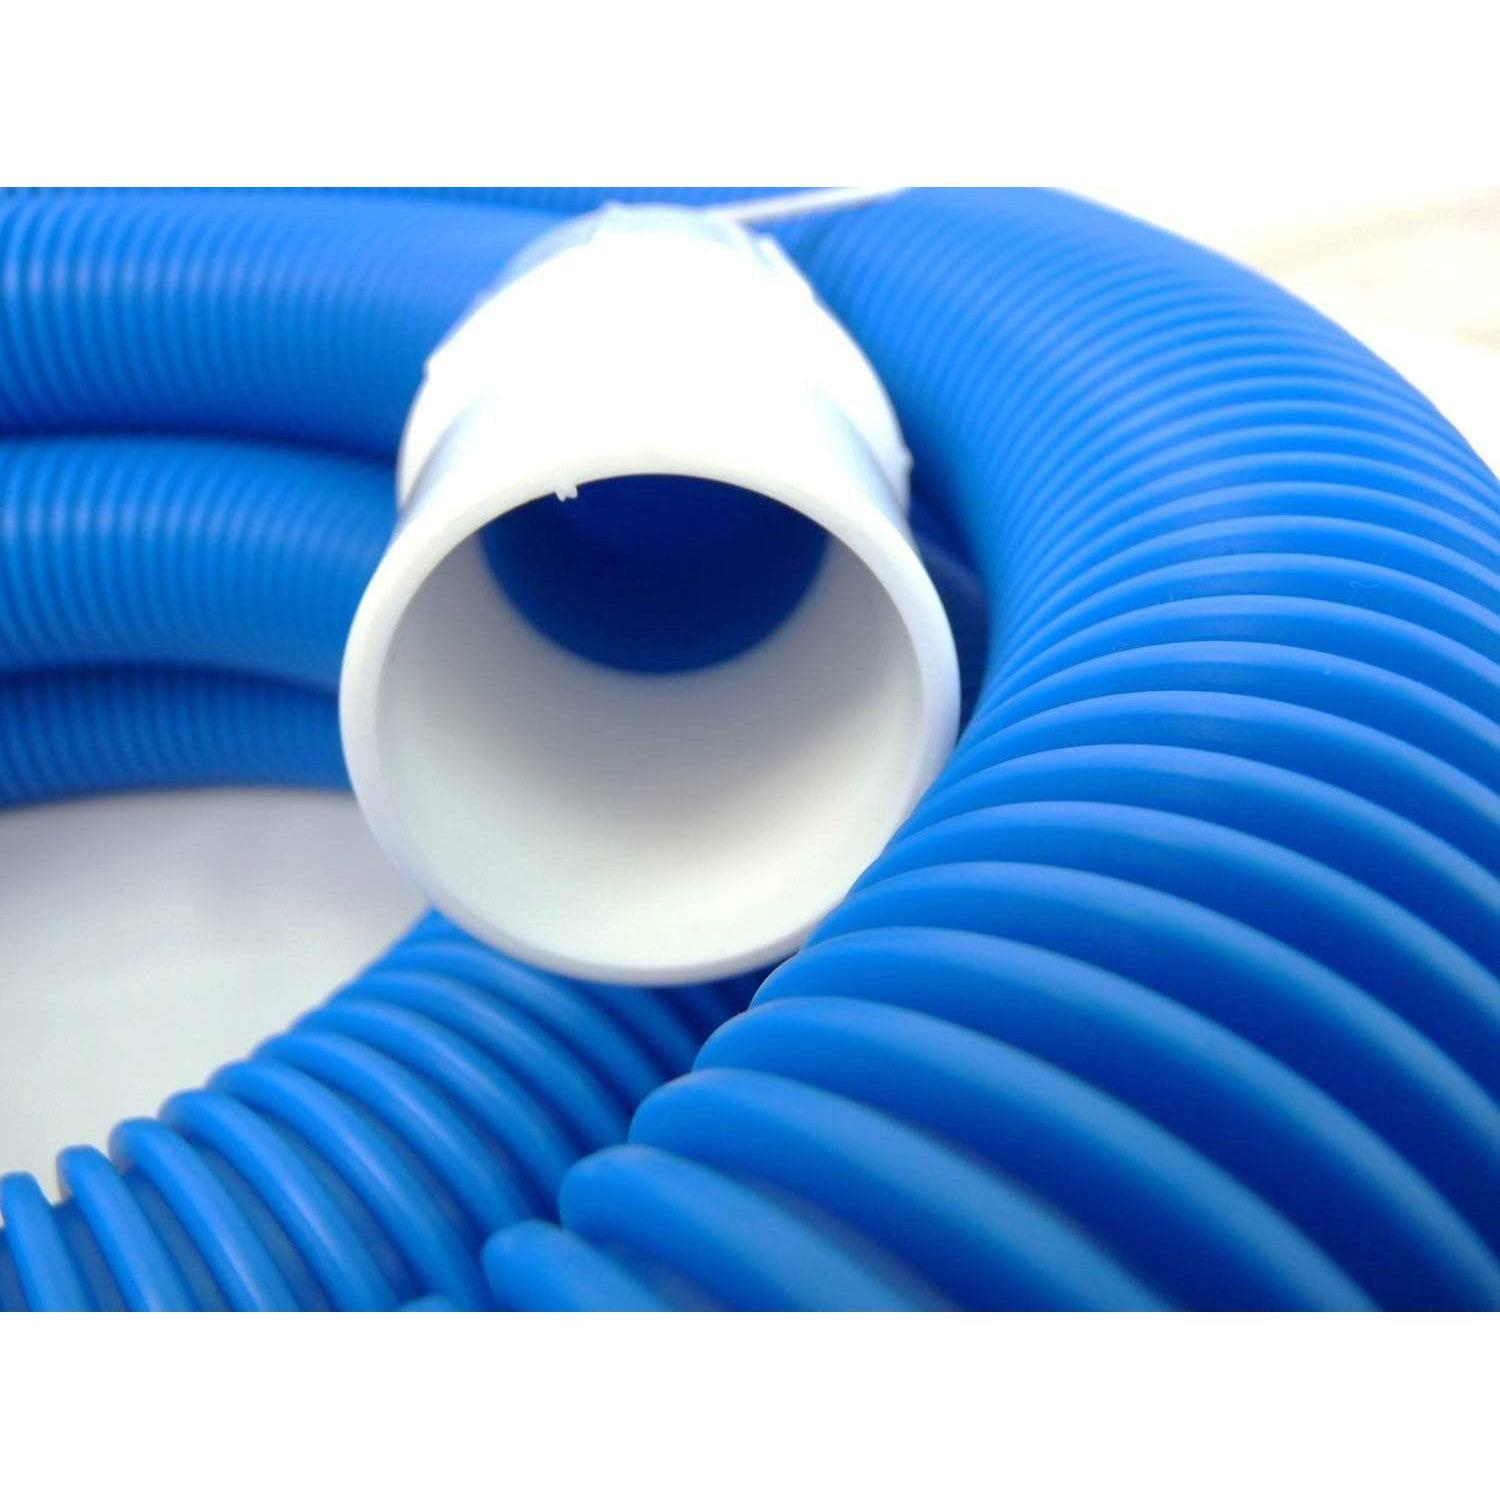 Aussie Gold Premier 15m 49ft Pool Hose-Hoses-Mr Pool Man